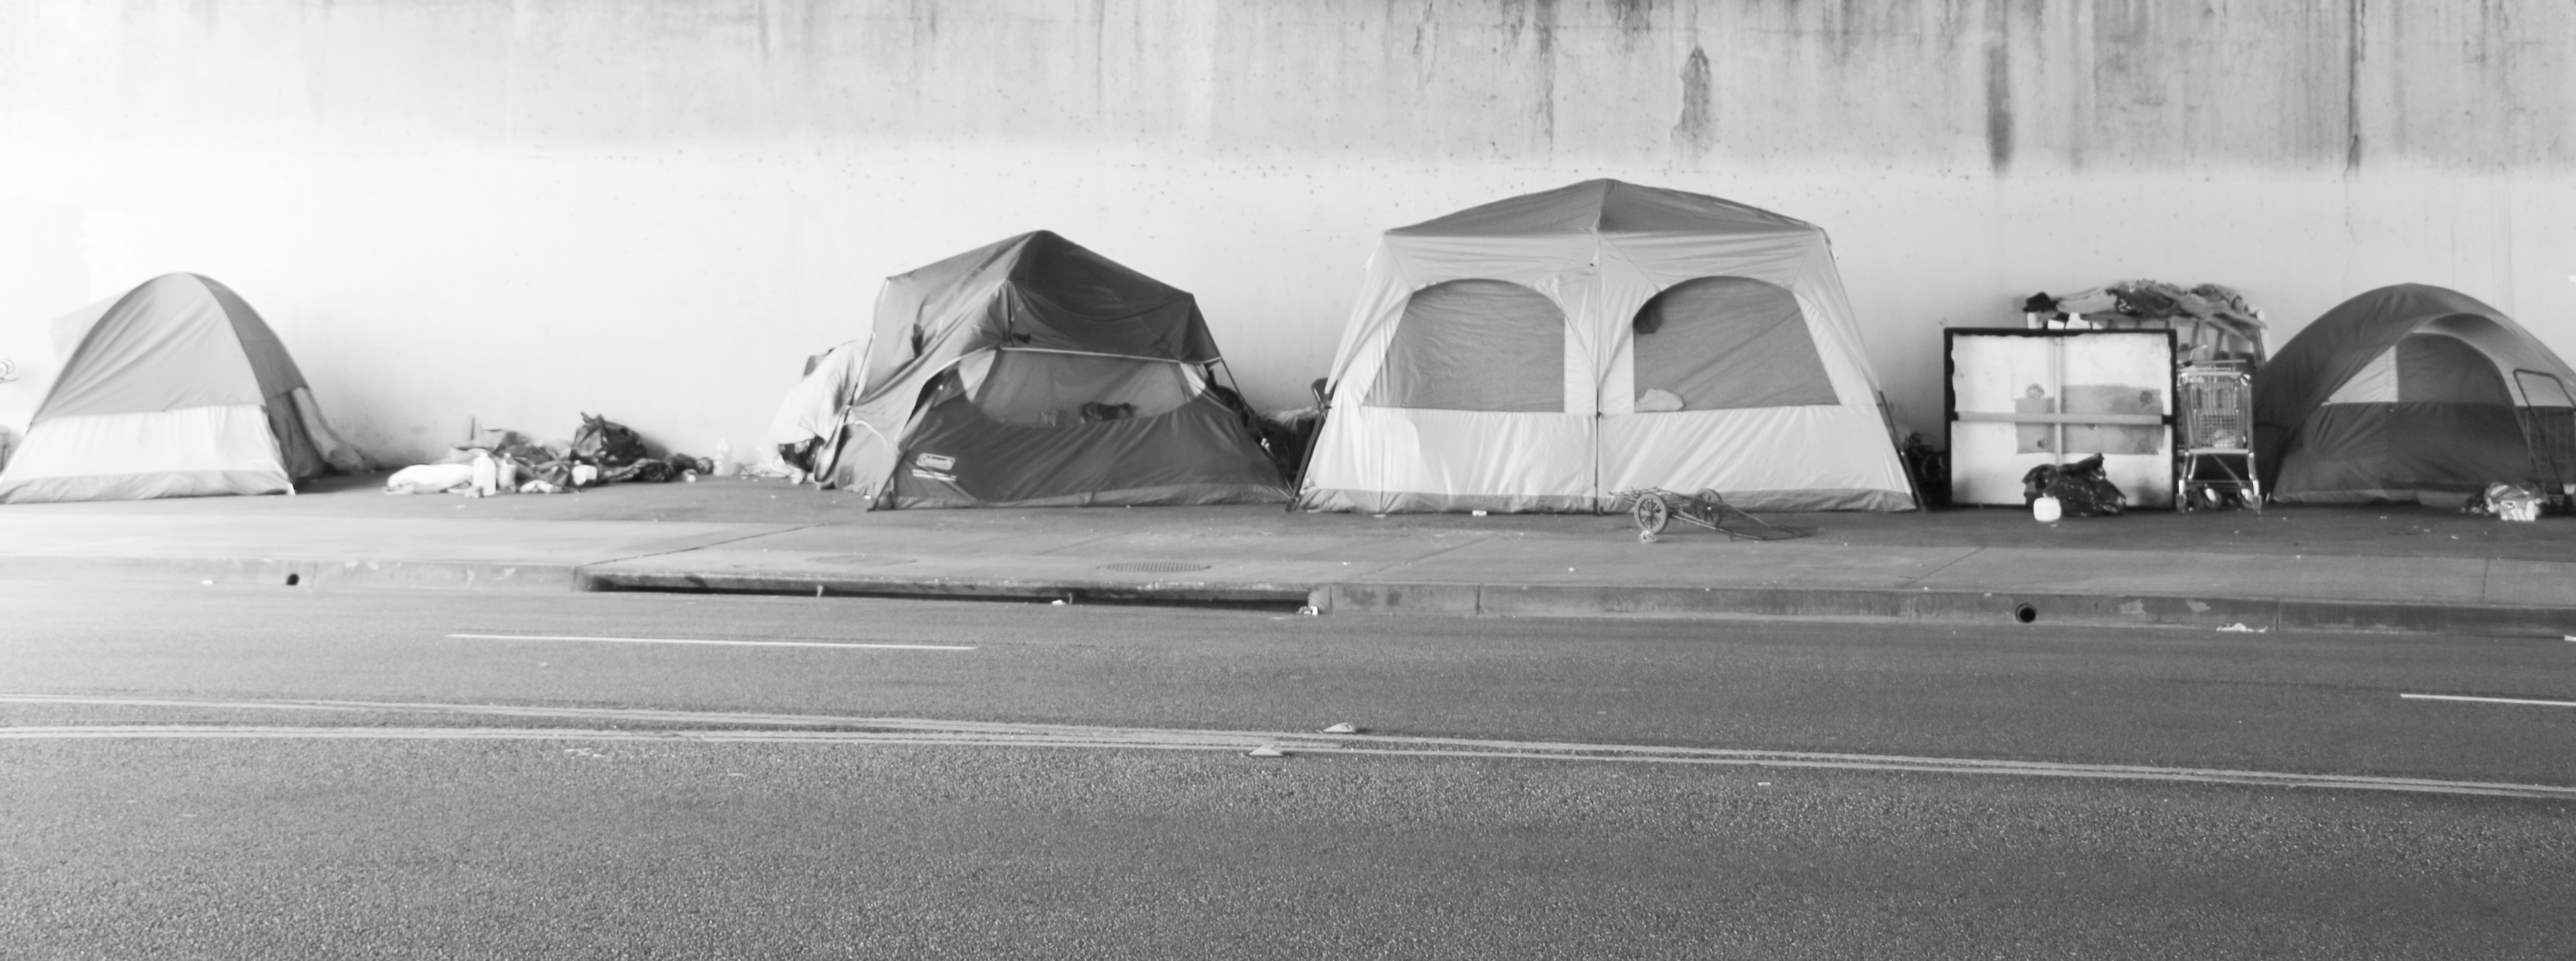 Tent City Every Night Thousands Of People Set Up Tents On The Sidewalk To